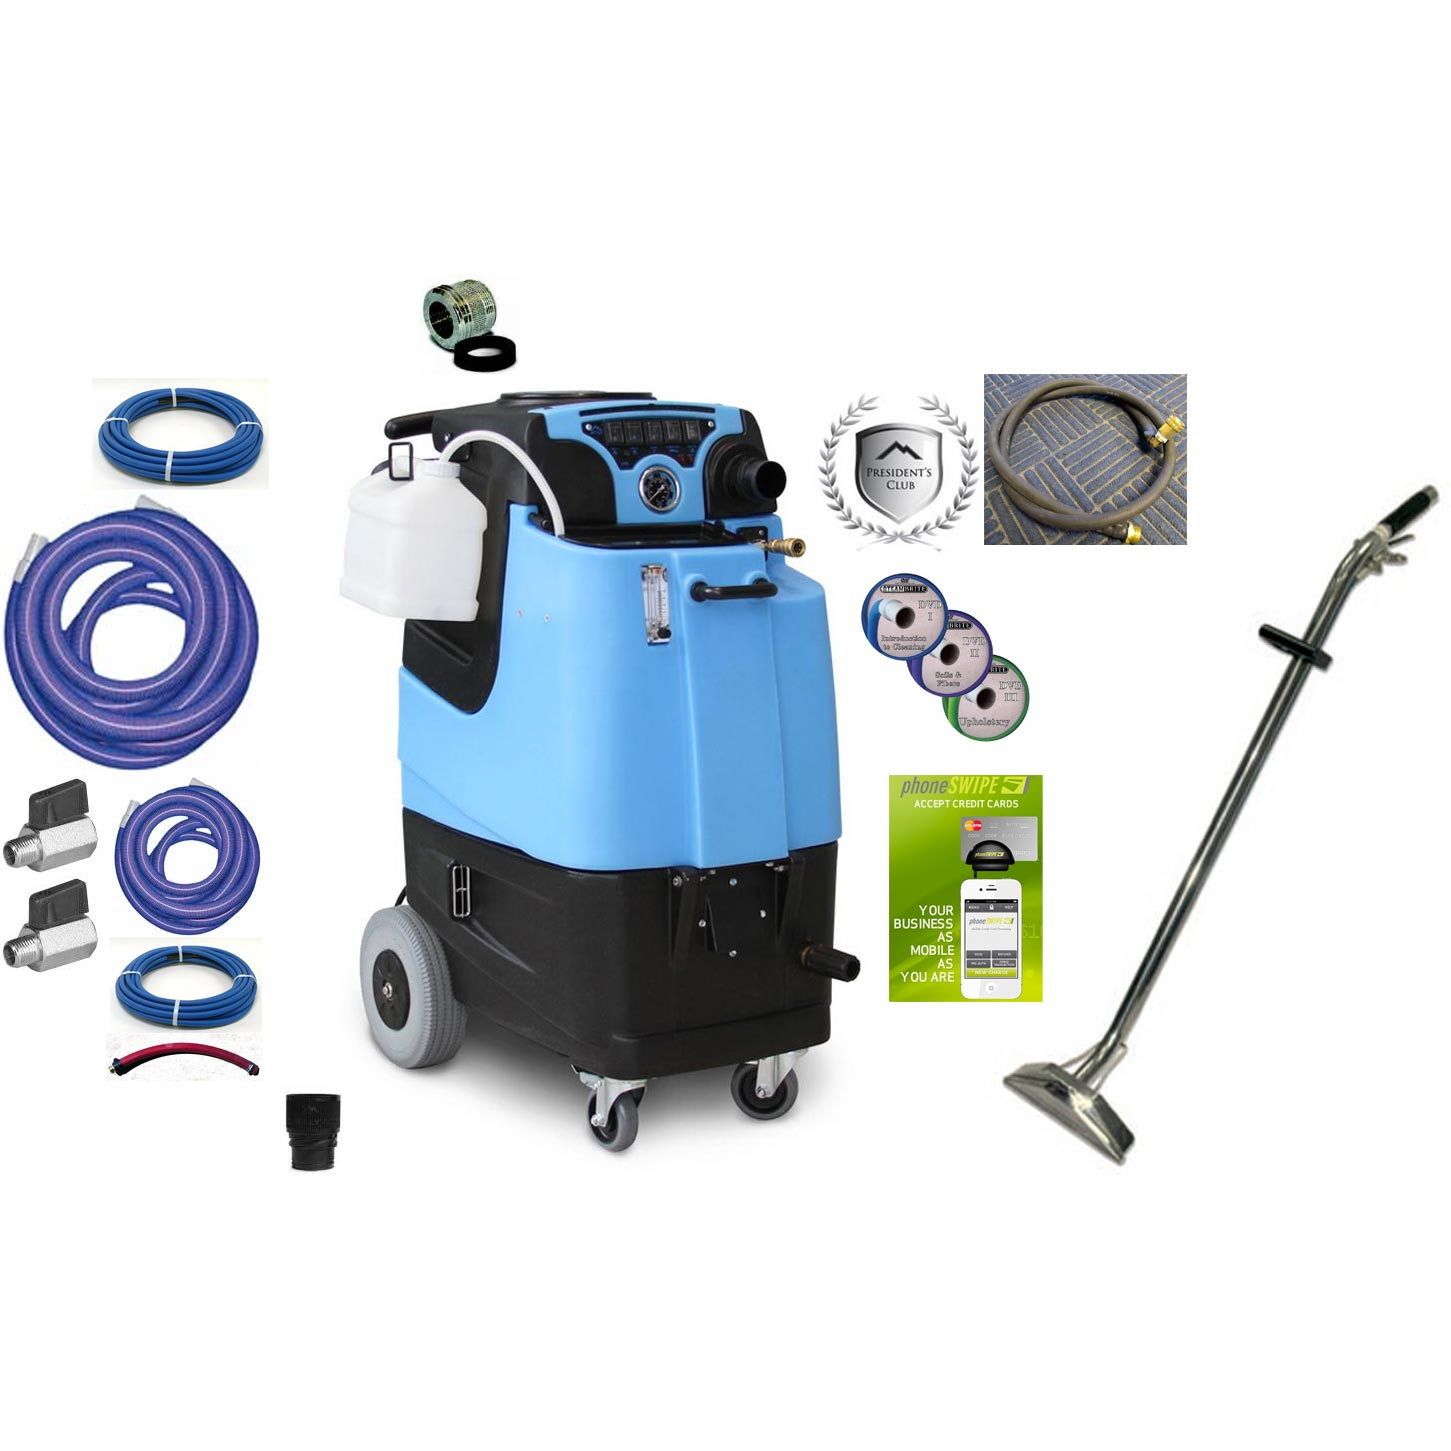 Mytee LTD3 S Starter Package Speedster Carpet Cleaning Machine 11Gal 500psi HEATED 2/3 Stg Vacs AFAD Plus Accessories